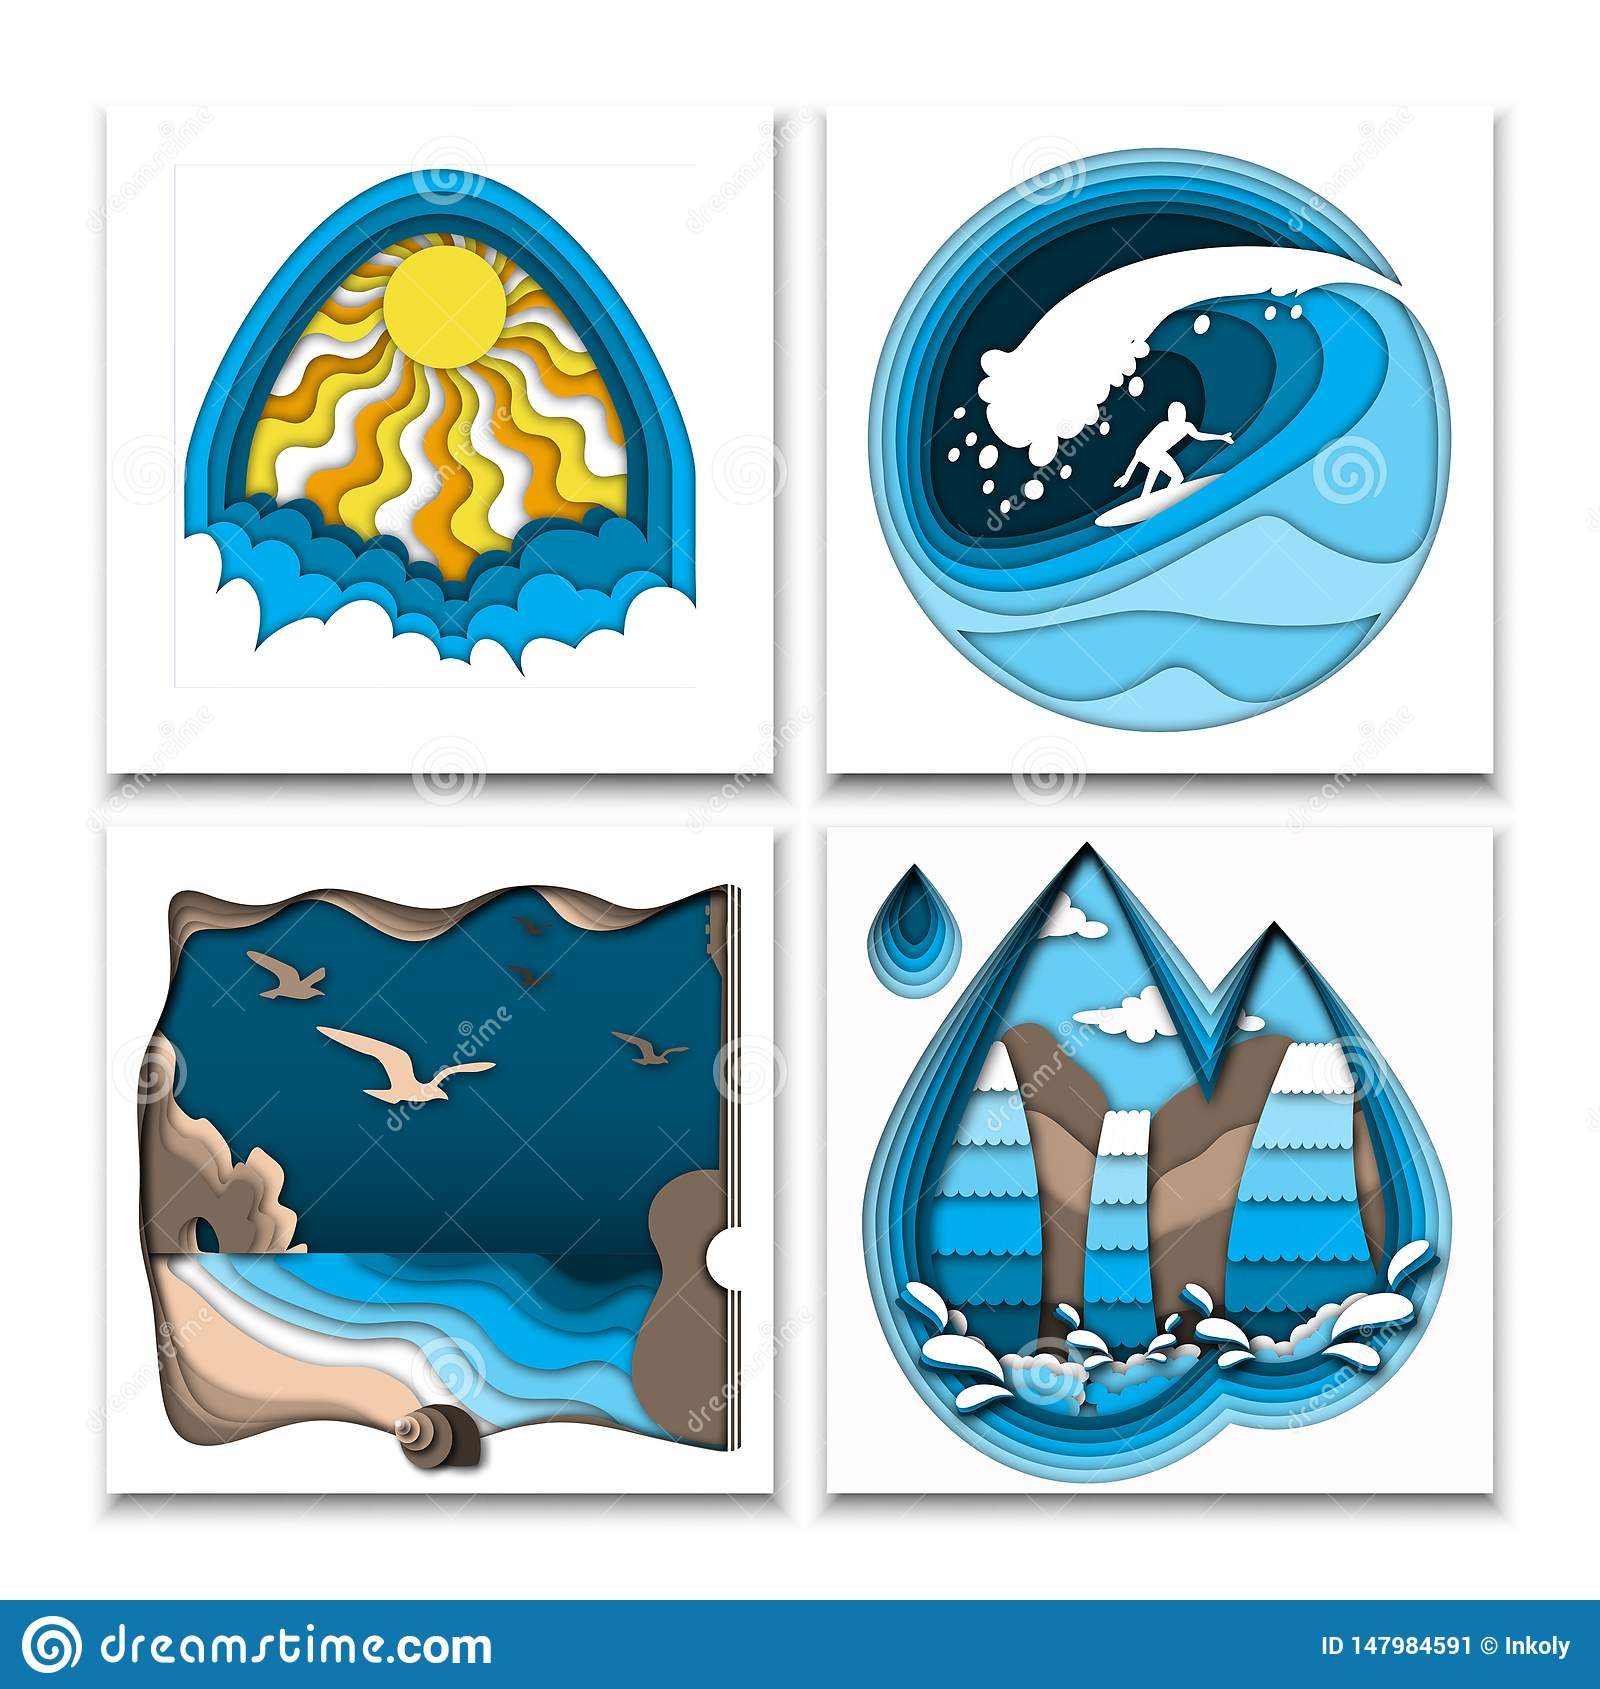 Paper cut out style summer posters with sun, clouds, surfer on high ocean wave, sea beach, rocks, birds and waterfall.